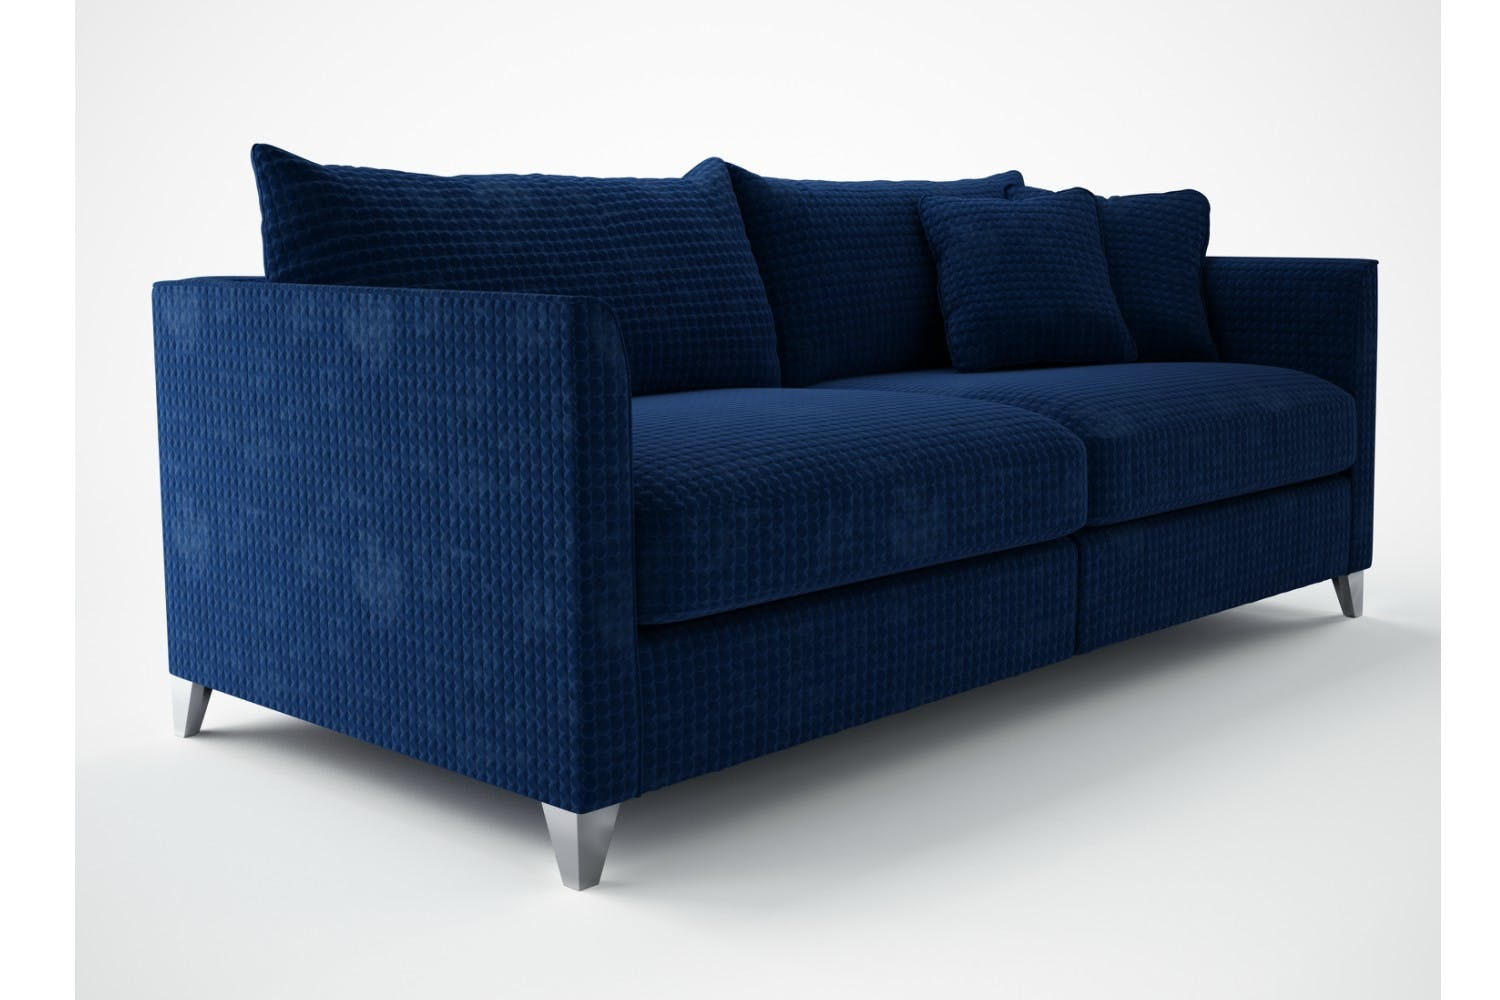 Zoey 4 Seater Sofa | 8 Colour Options